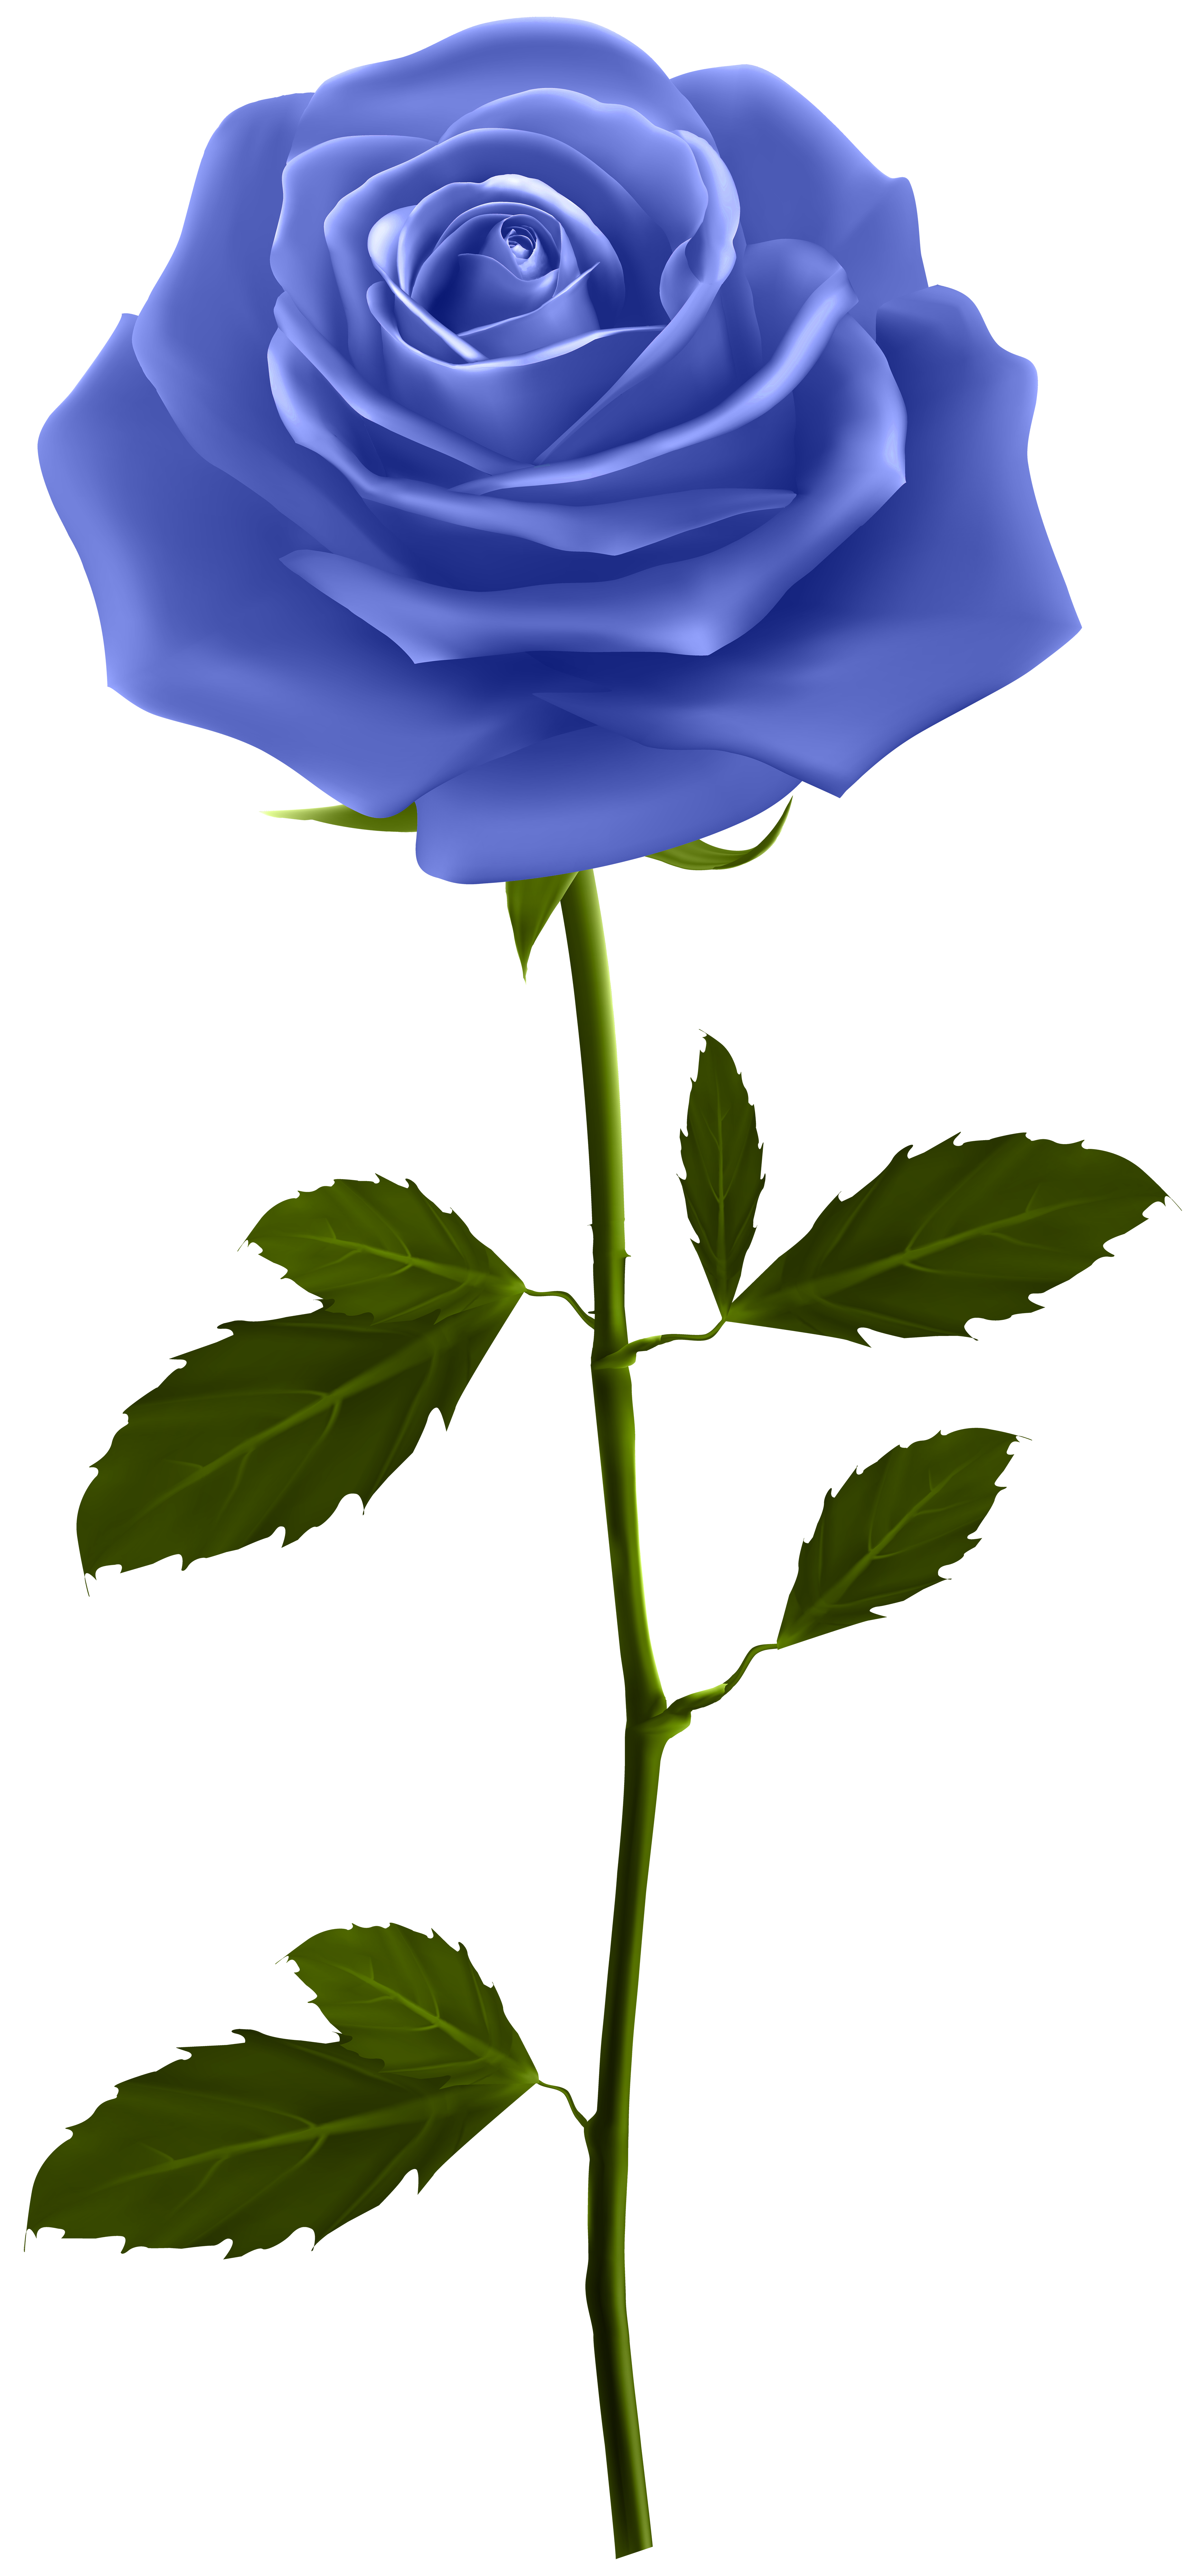 Rose with stem clipart png freeuse library Blue Rose with Stem PNG Clip Art Image   Gallery ... png freeuse library